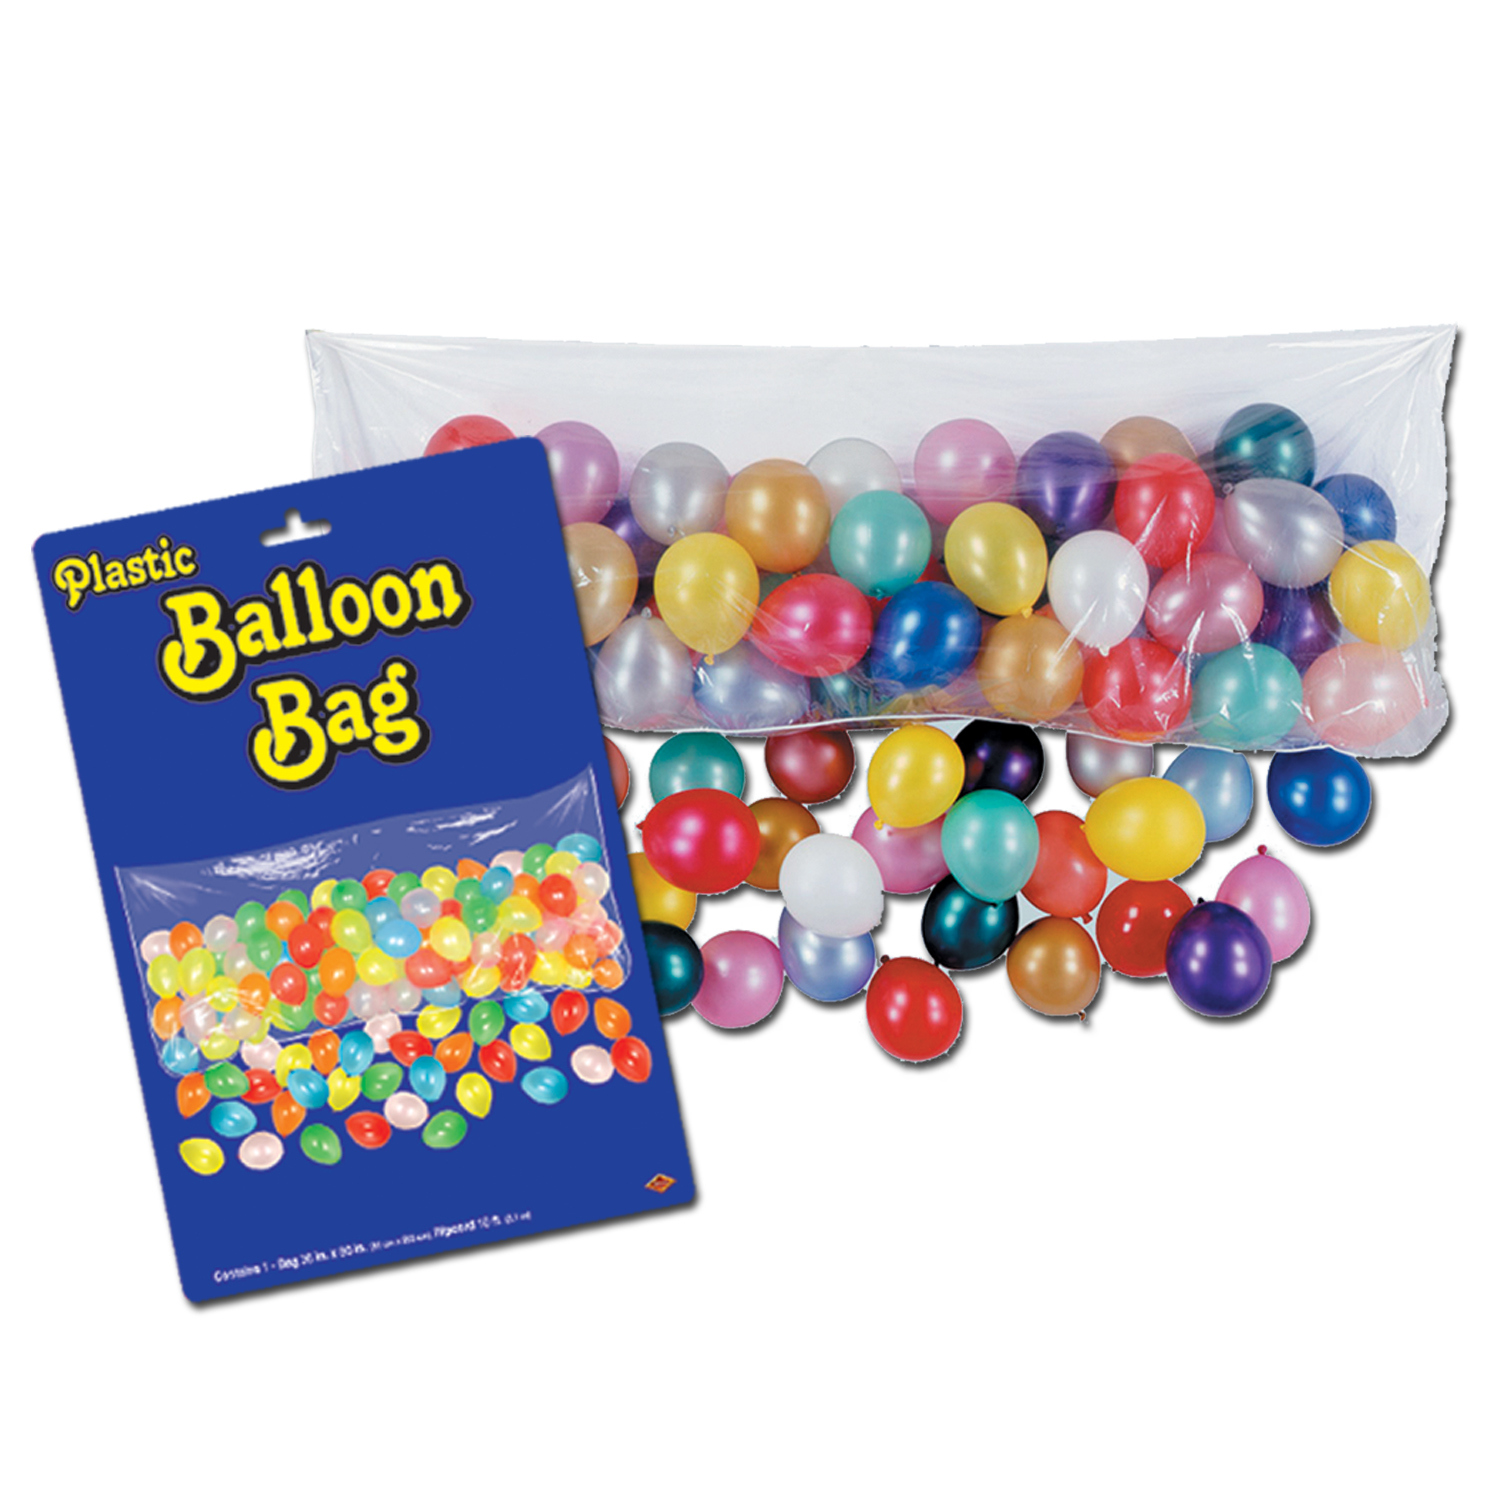 "Plastic Balloon Bag w/Balloons 3 x 6 8"" (Packed 1 Each) plastic, balloon, bag, with, balloons, party, pack, surprise, decoration, drop, kit,"